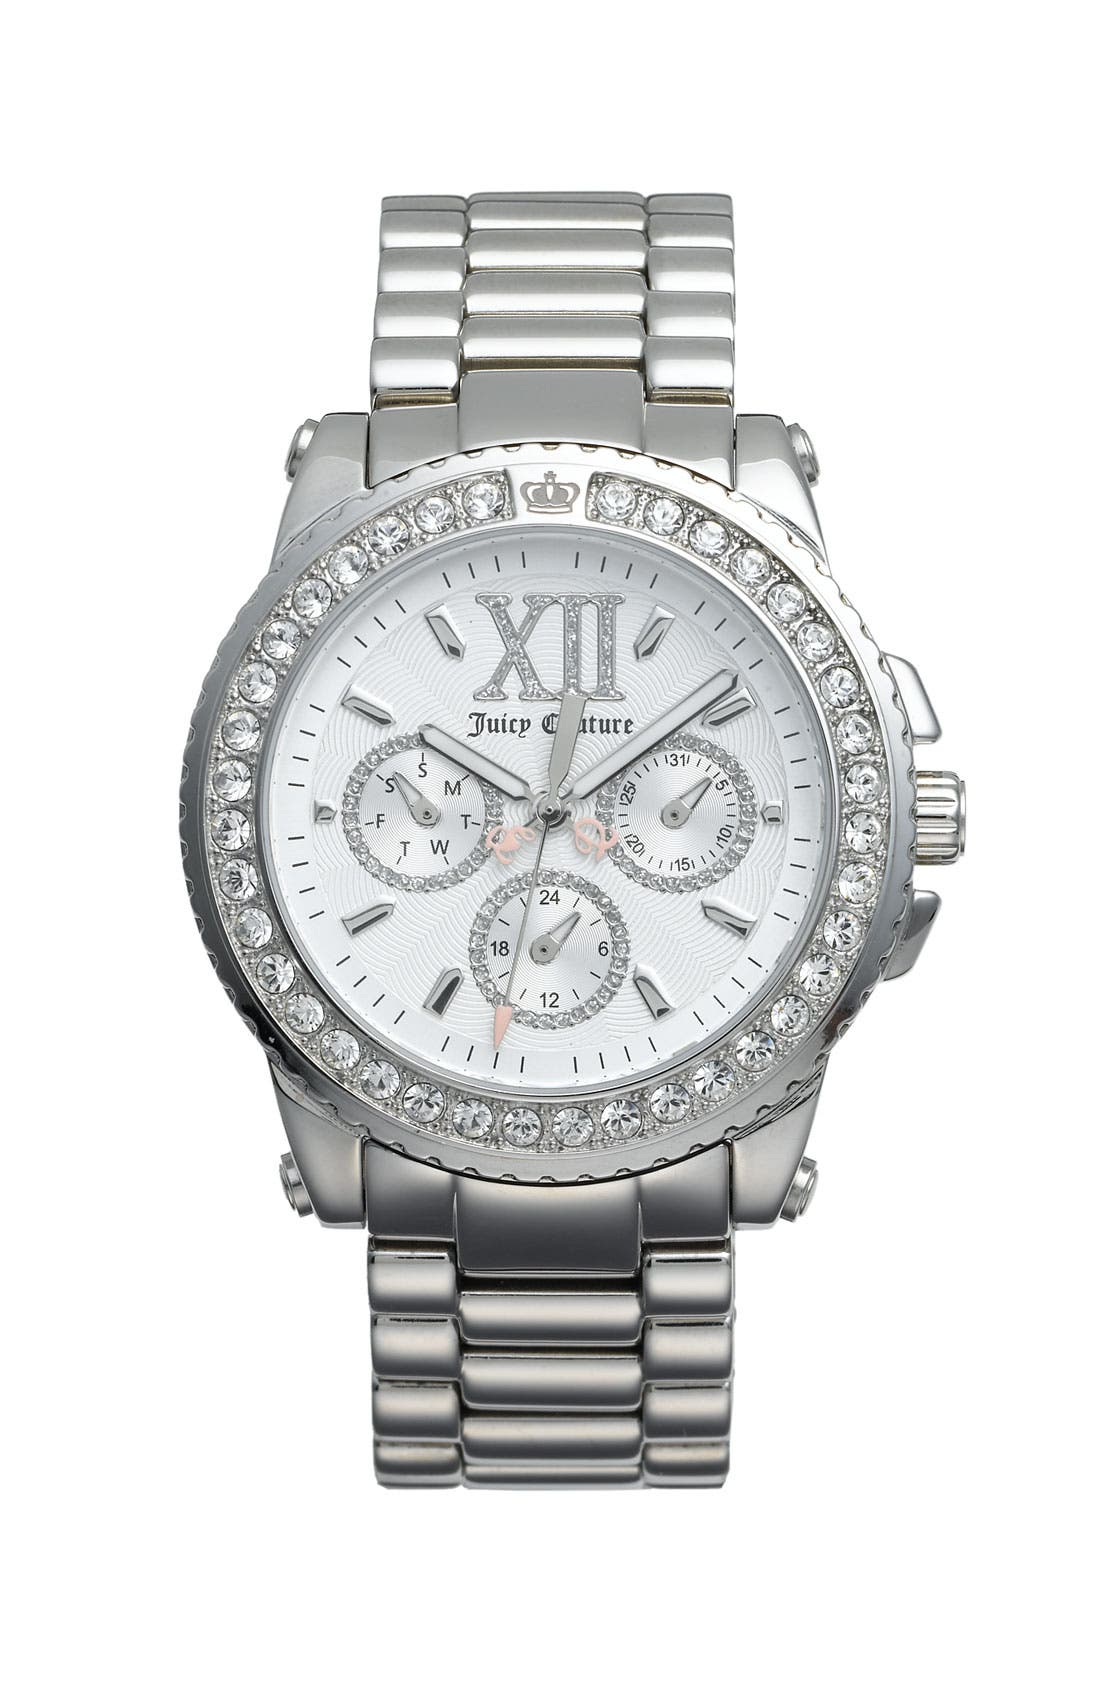 Main Image - Juicy Couture 'Pedigree' Stainless Steel Bracelet Watch, 39mm